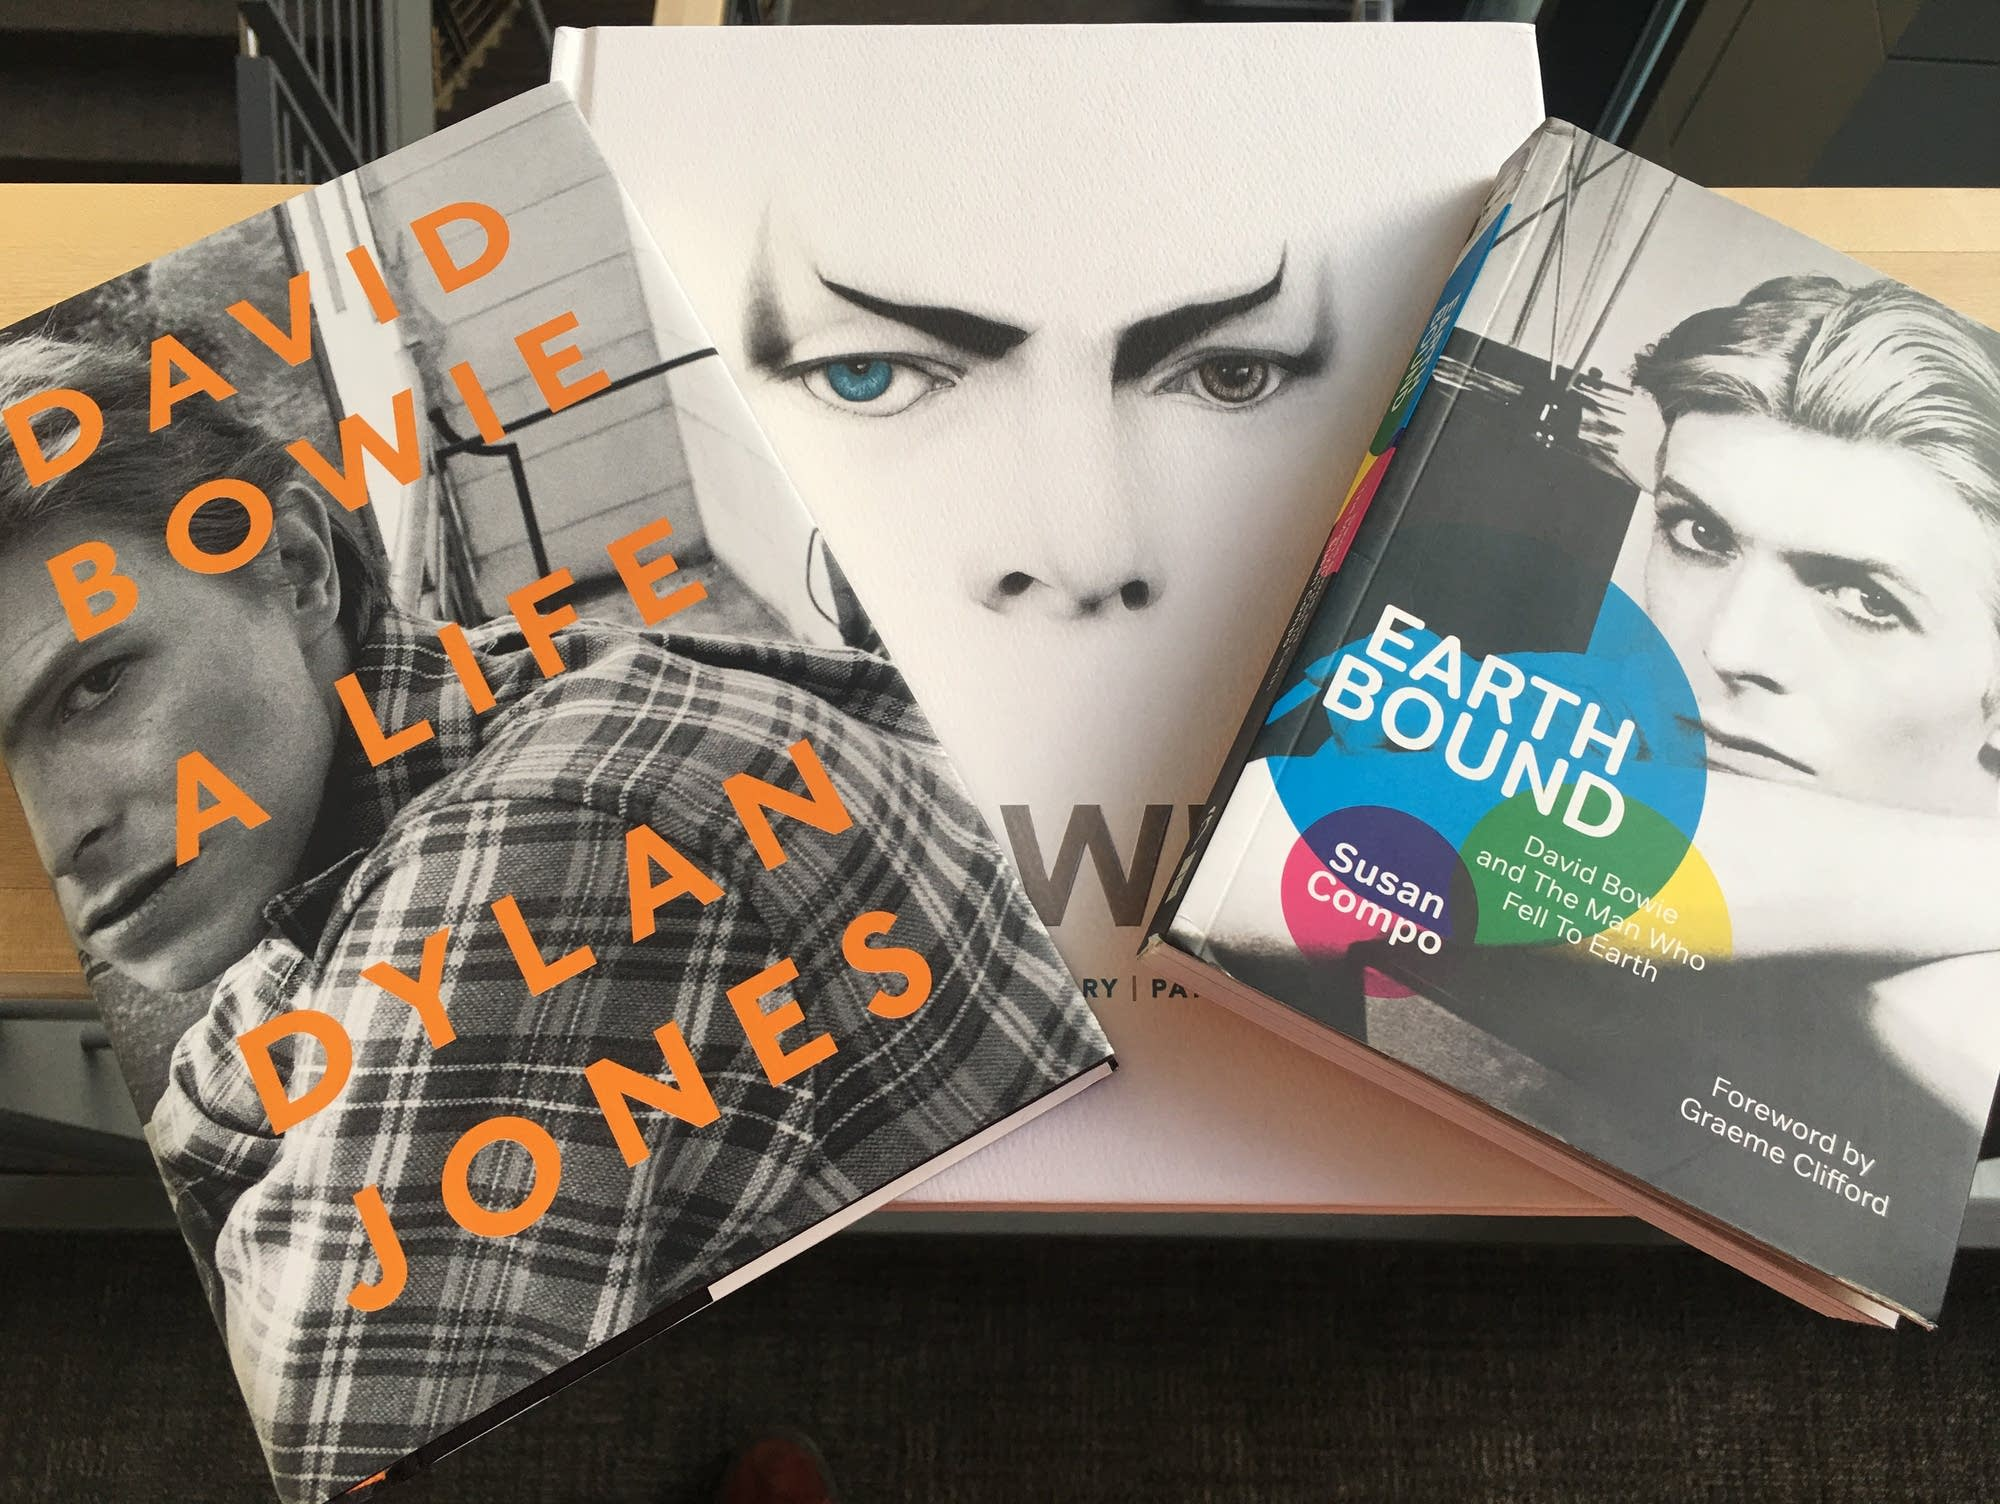 Three new books about David Bowie.